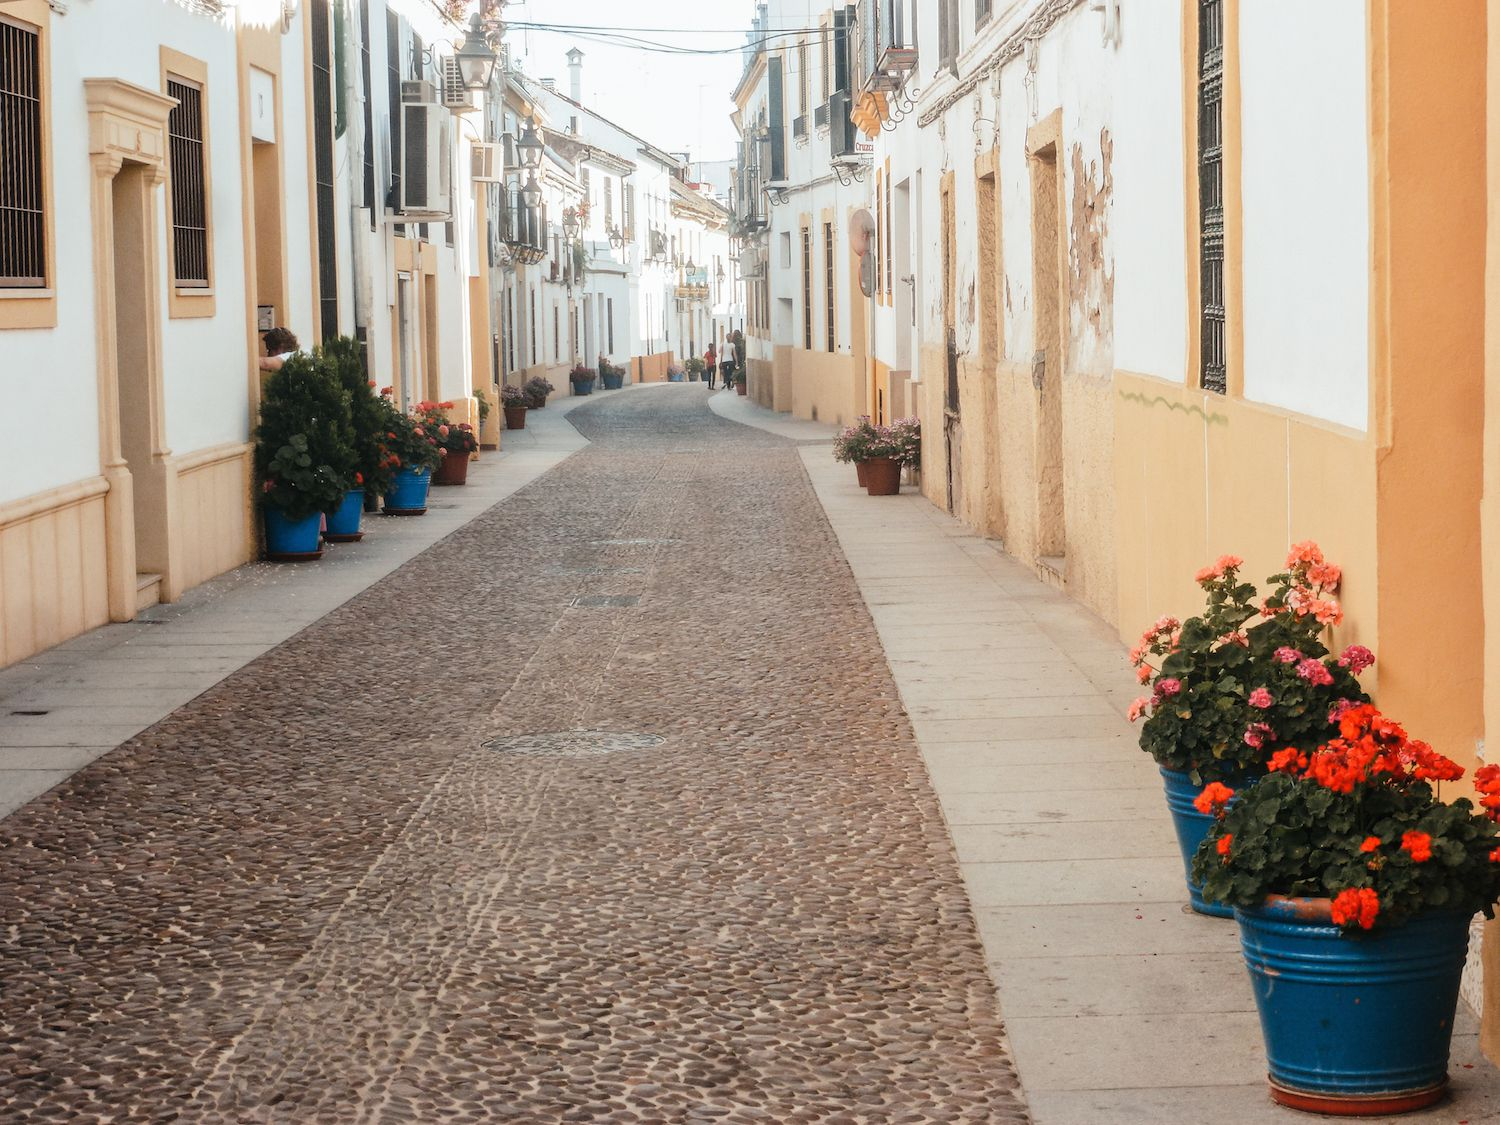 5 Cities to Visit in Spain This April That You Can't Miss